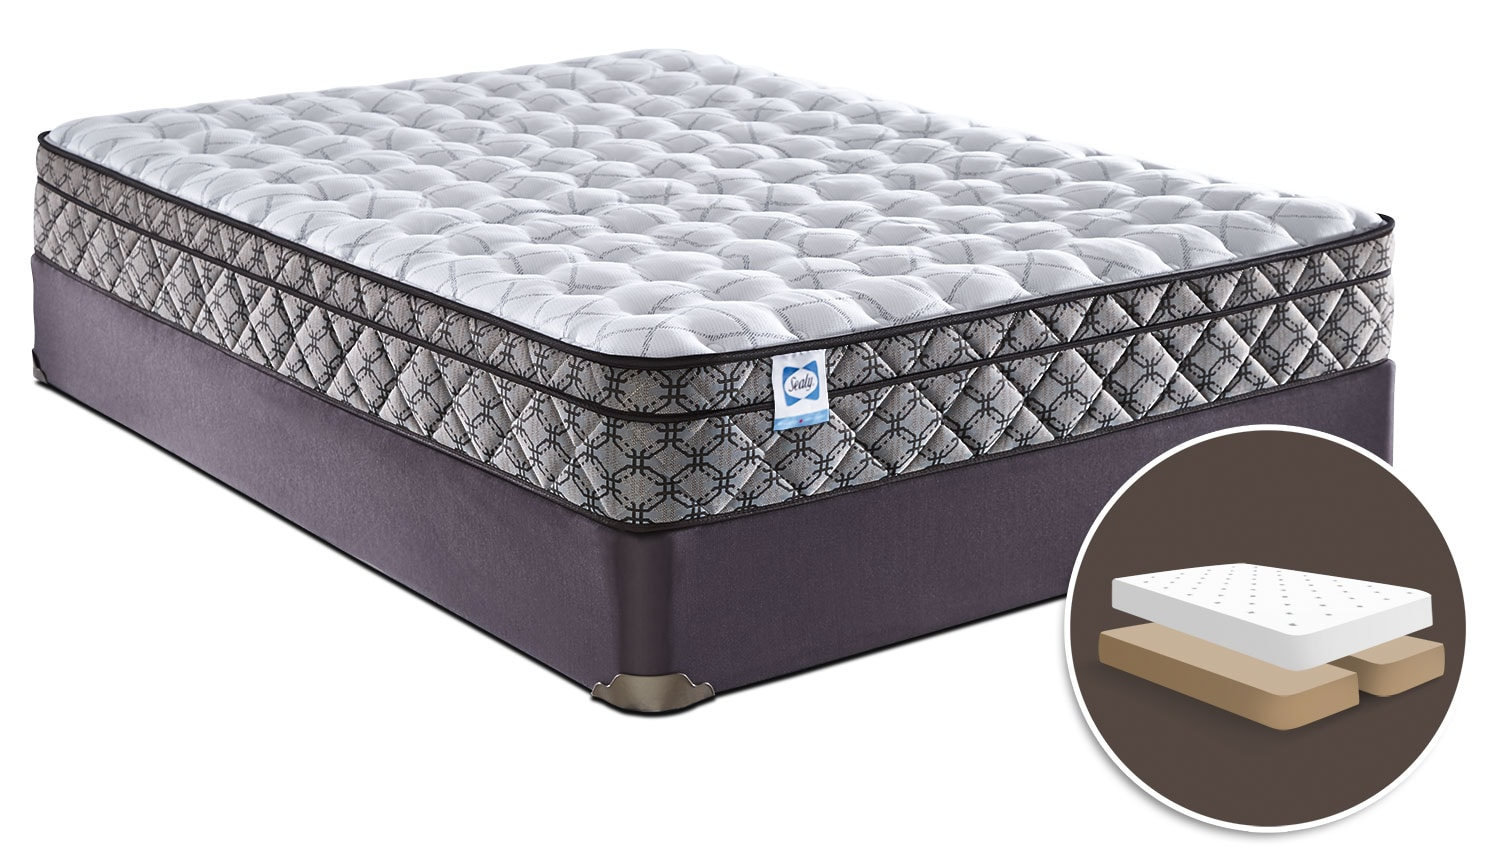 Sealy Bellcroft Euro-Top Firm Queen Mattress with Split Boxspring